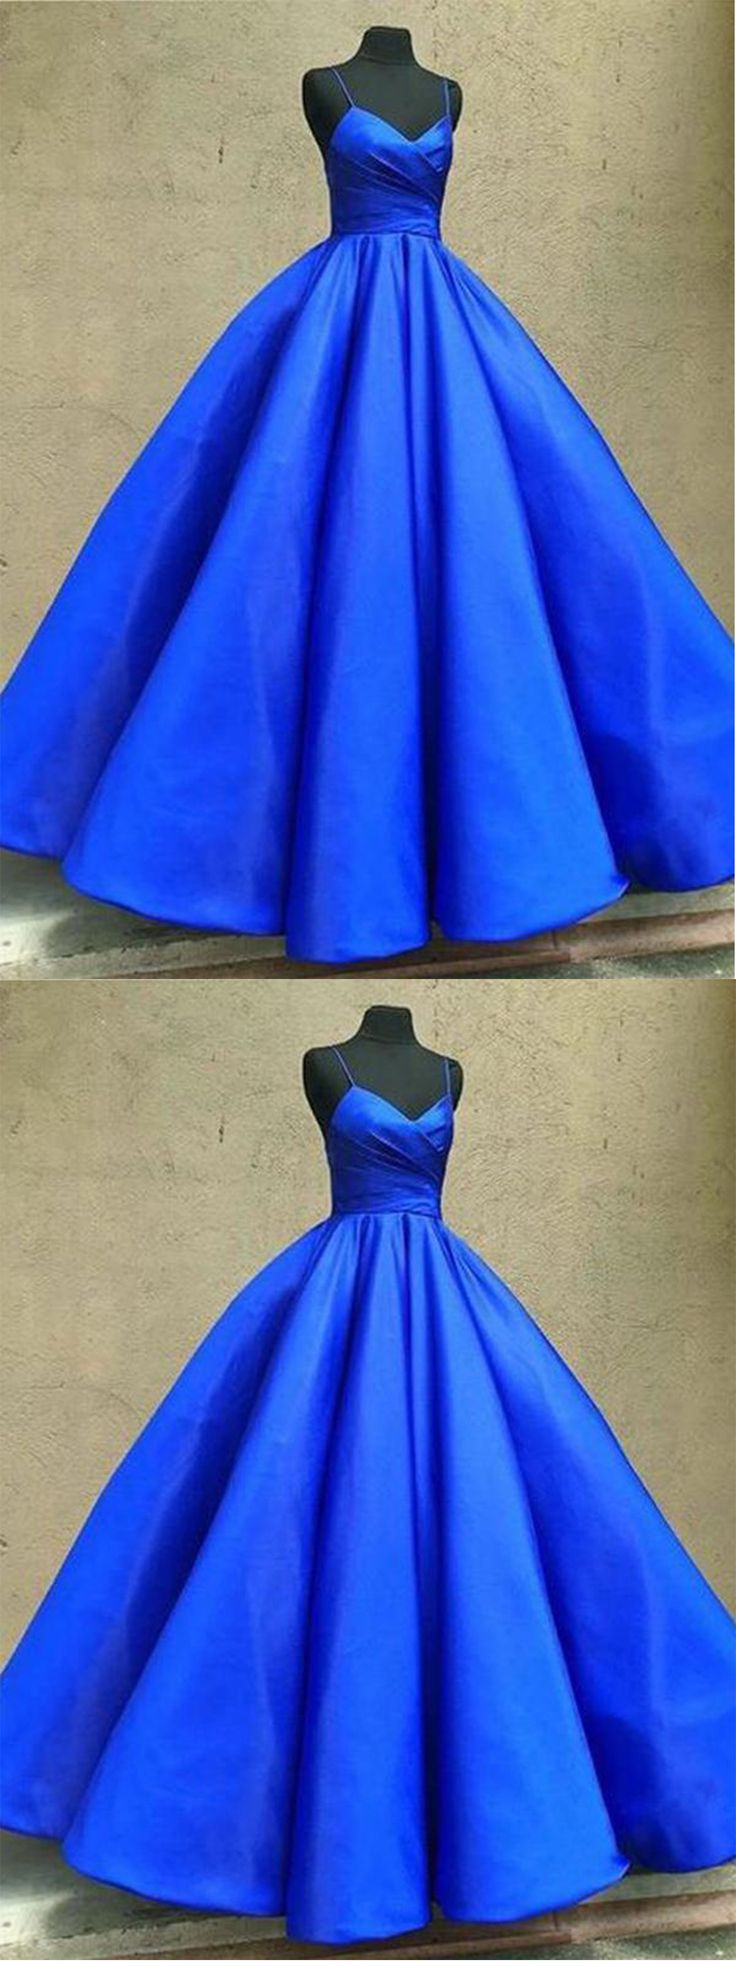 Royal Blue Prom Dress,Long Prom Dress,Modest Prom Dresses,Simple Prom Gown,A line Prom Dress #royalblue #ballgown #simple #formal #evening #okdresses